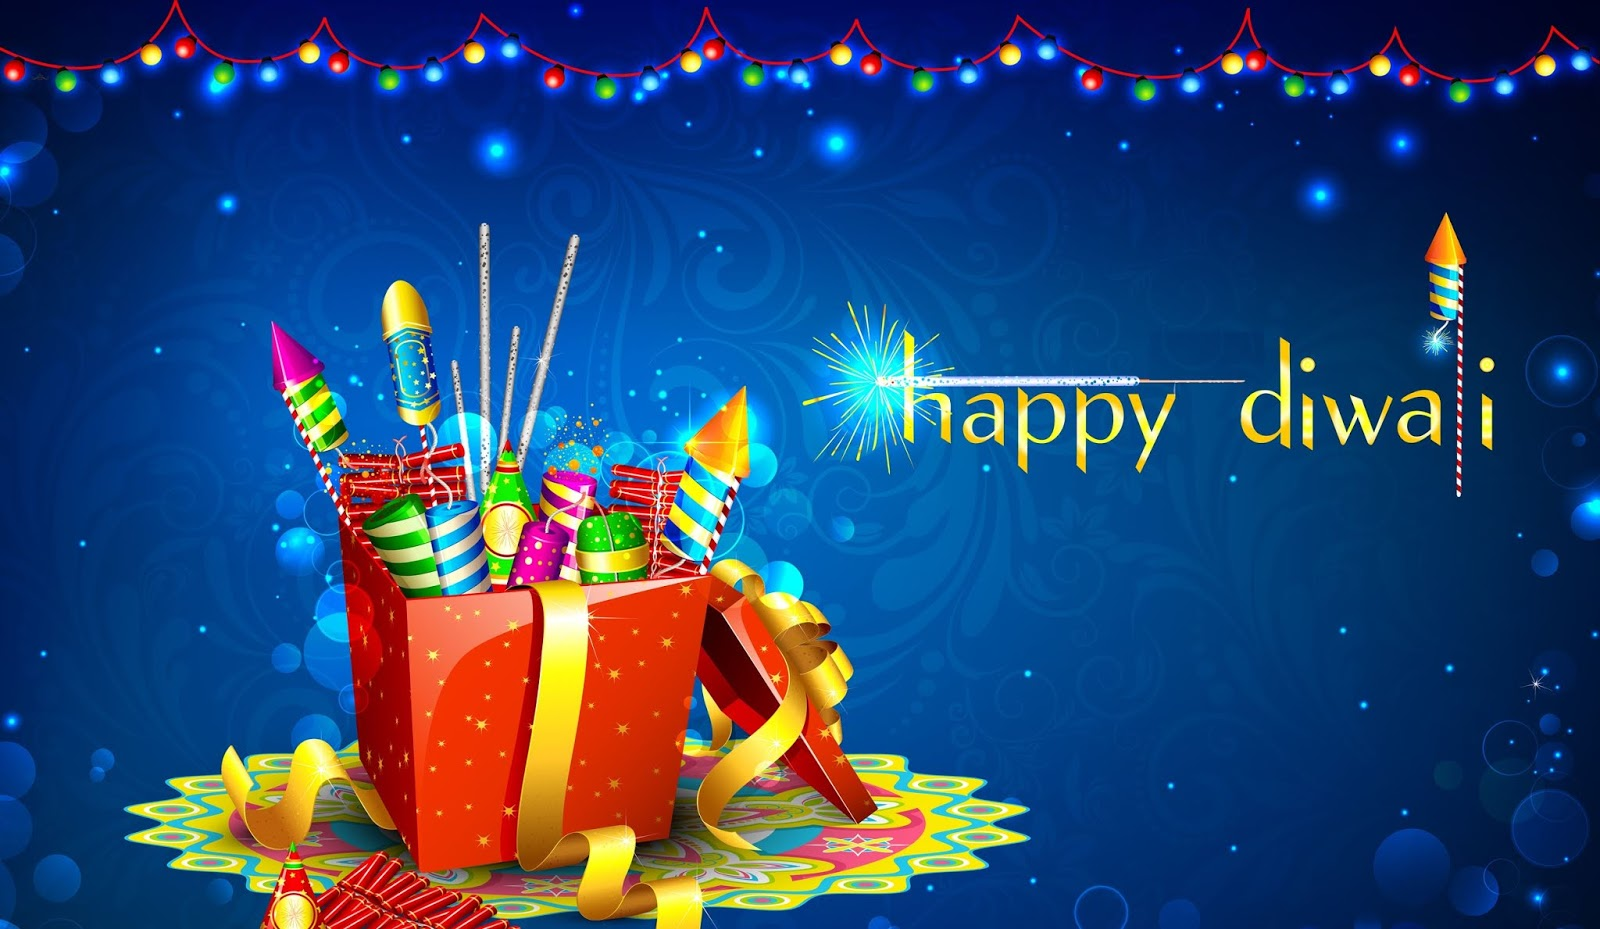 Happy Diwali Images Wishes Download Diwali Photo Pictures And